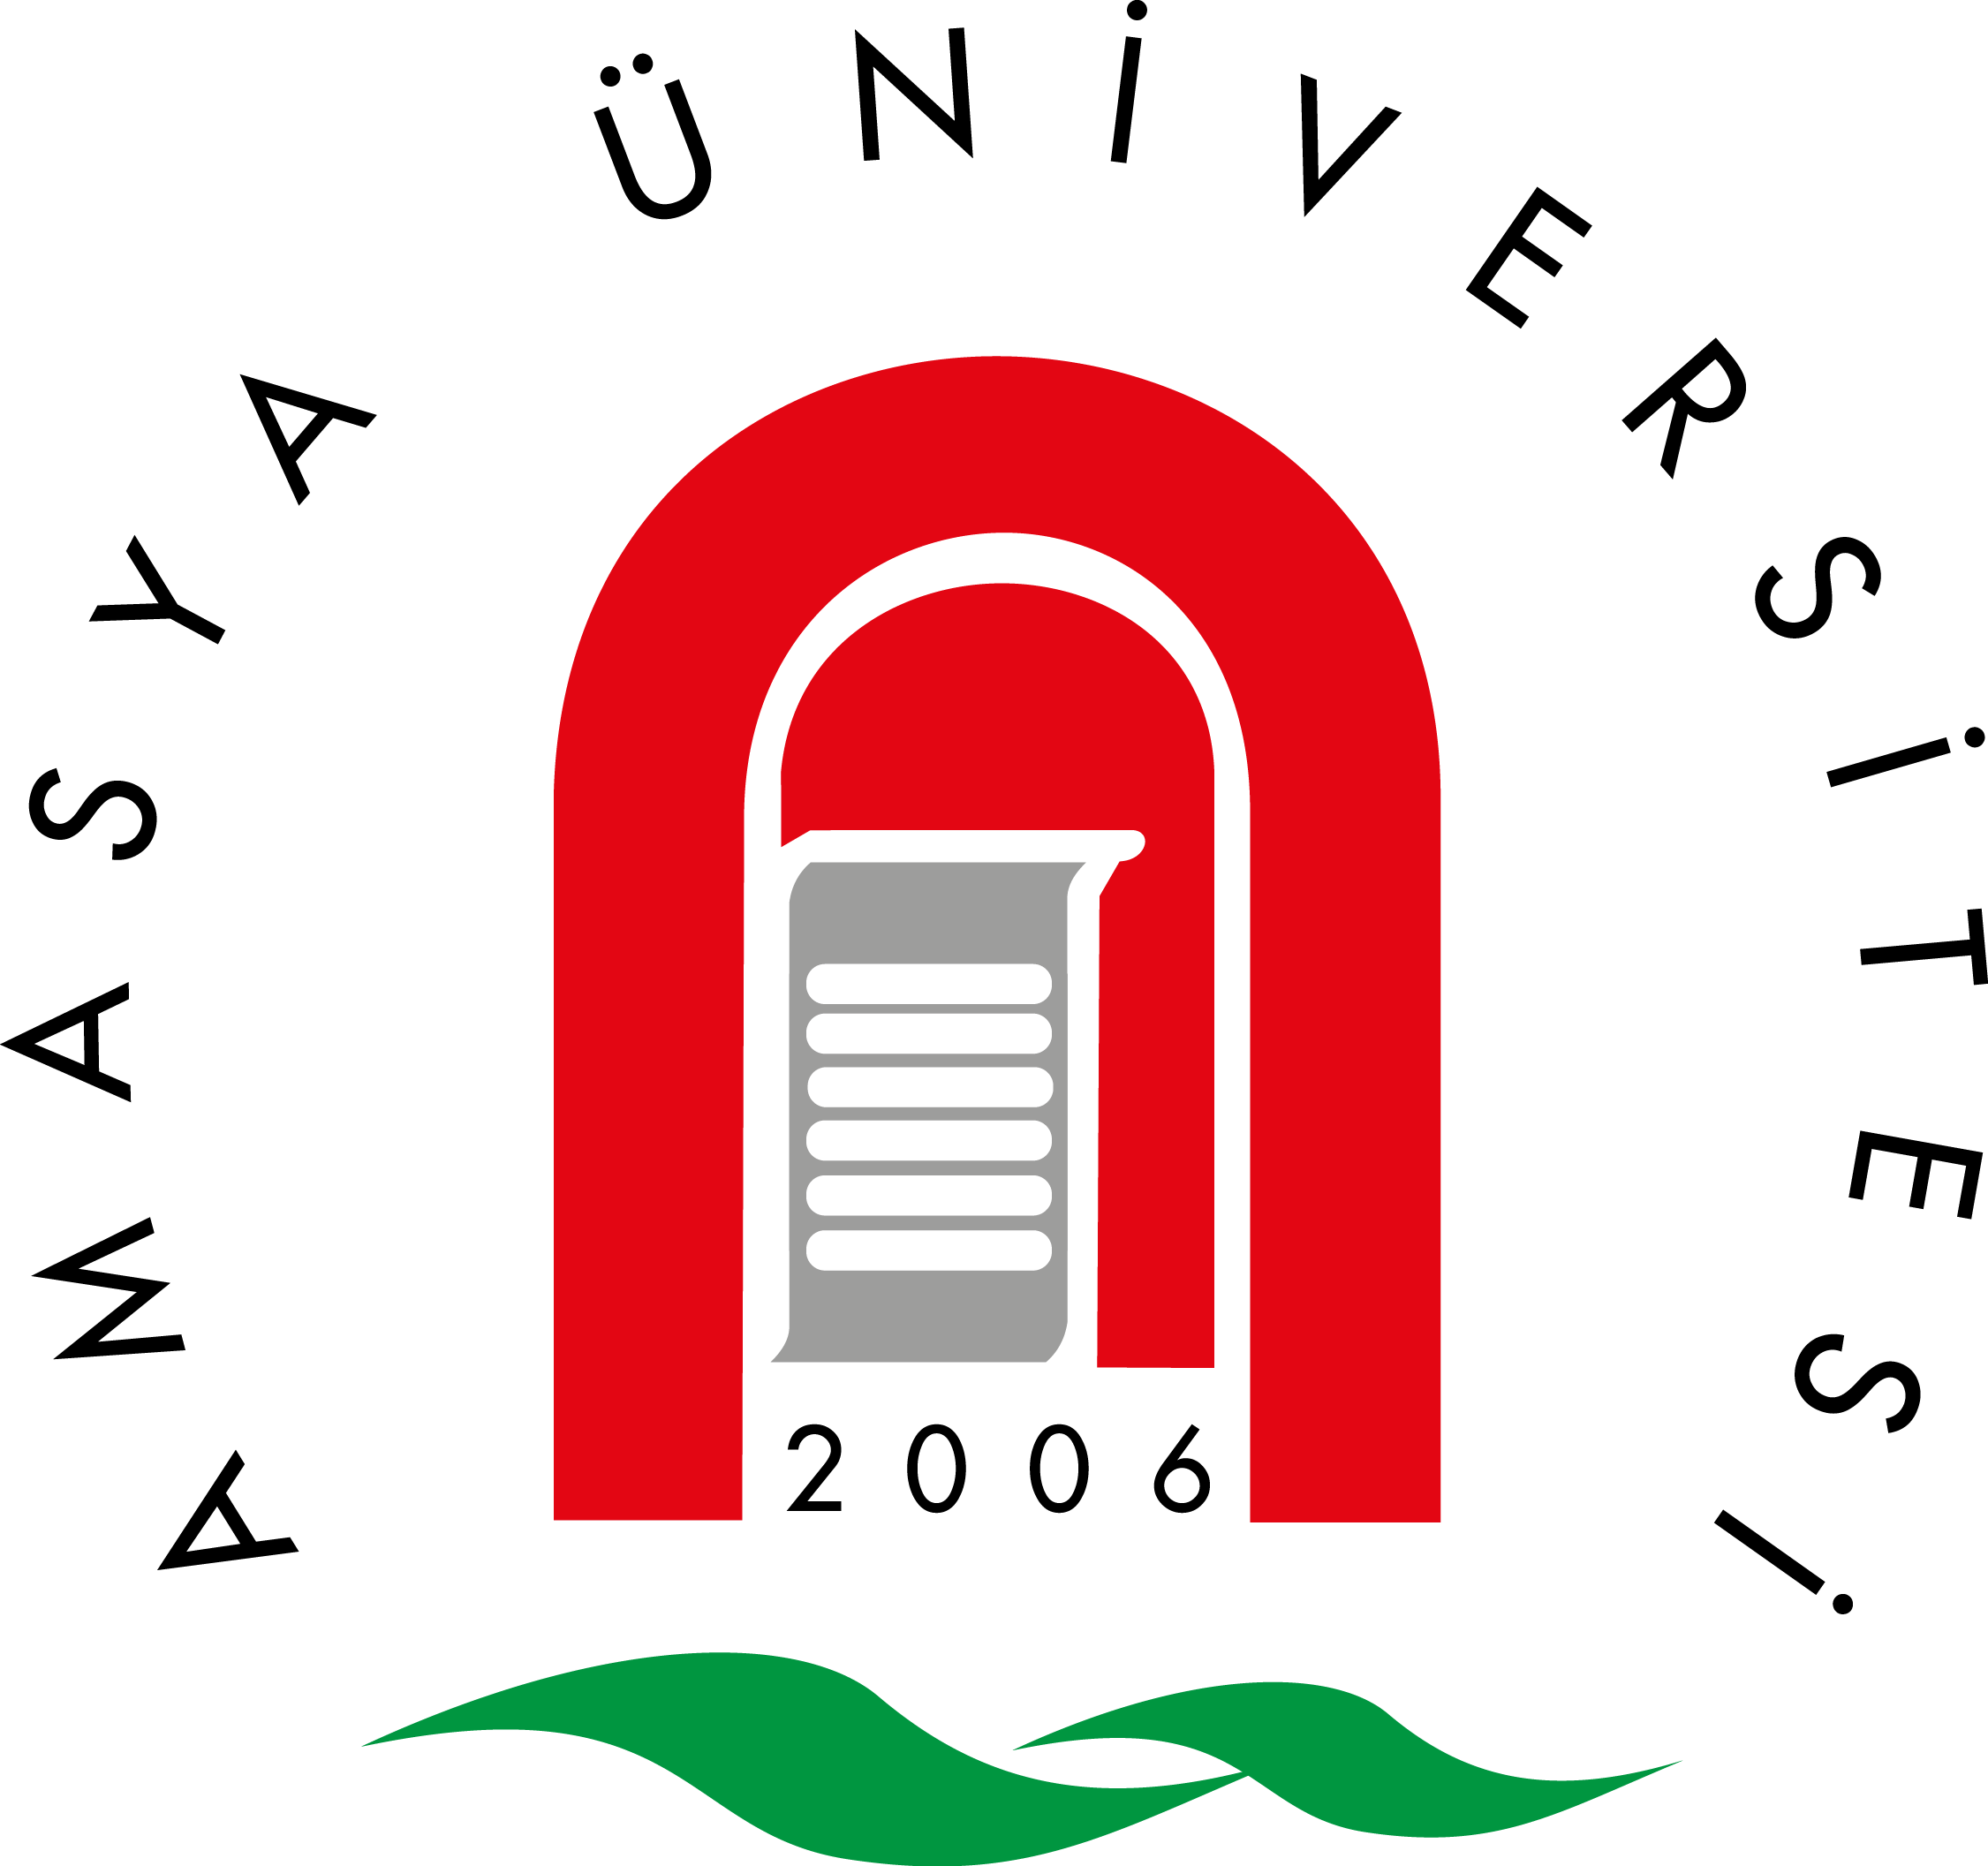 amasya universitesi logo vector